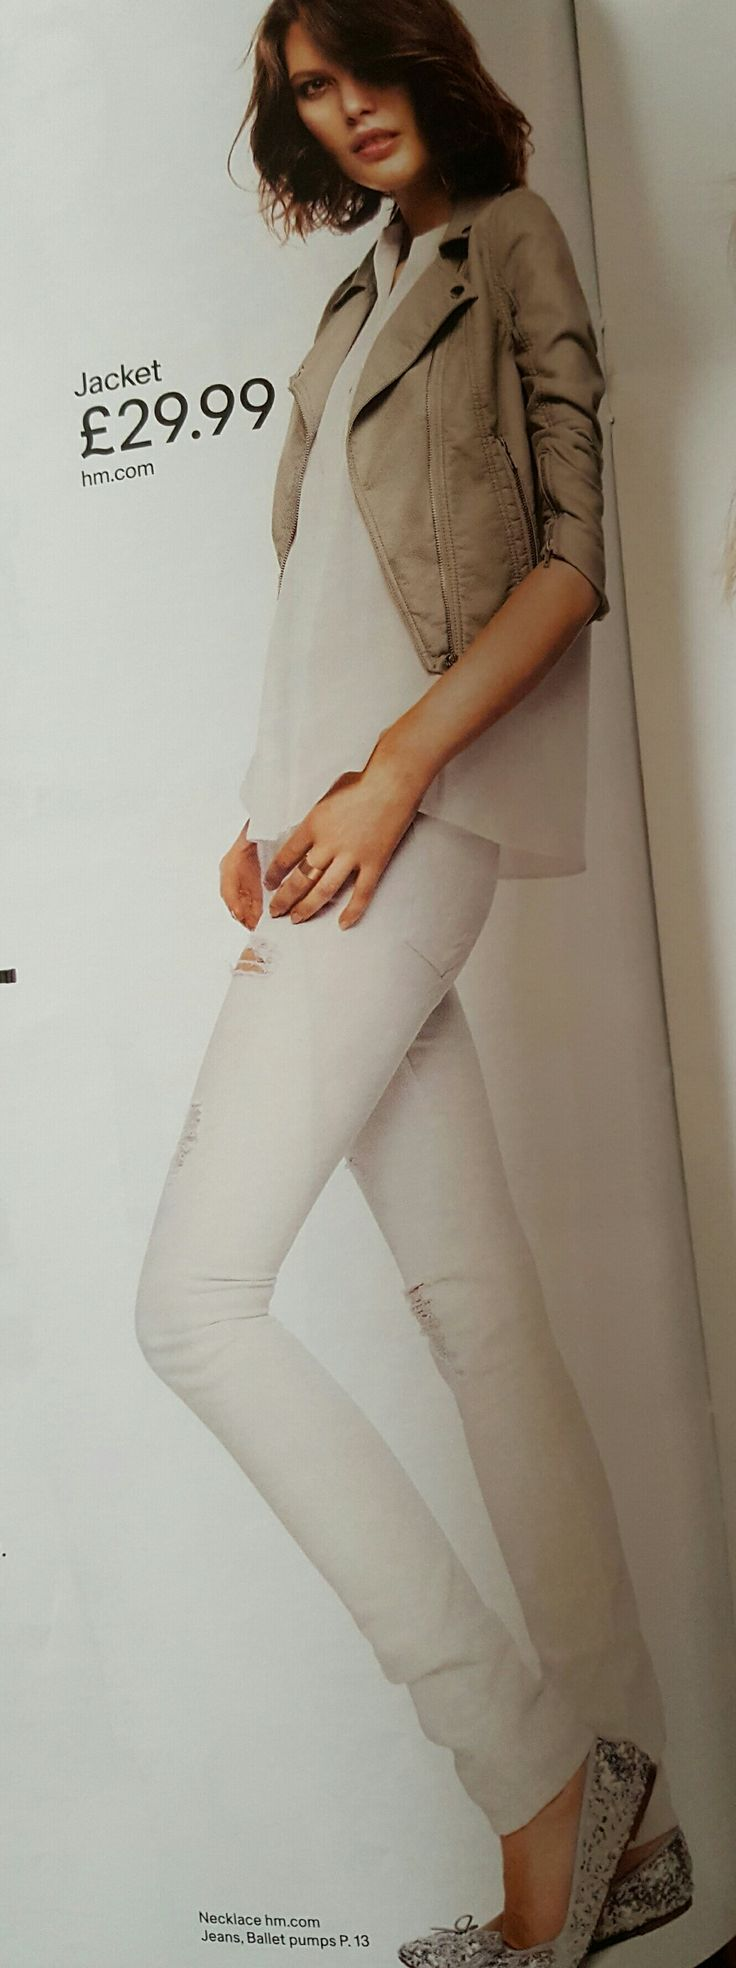 White skinny jeans white top and cream faux leather biker